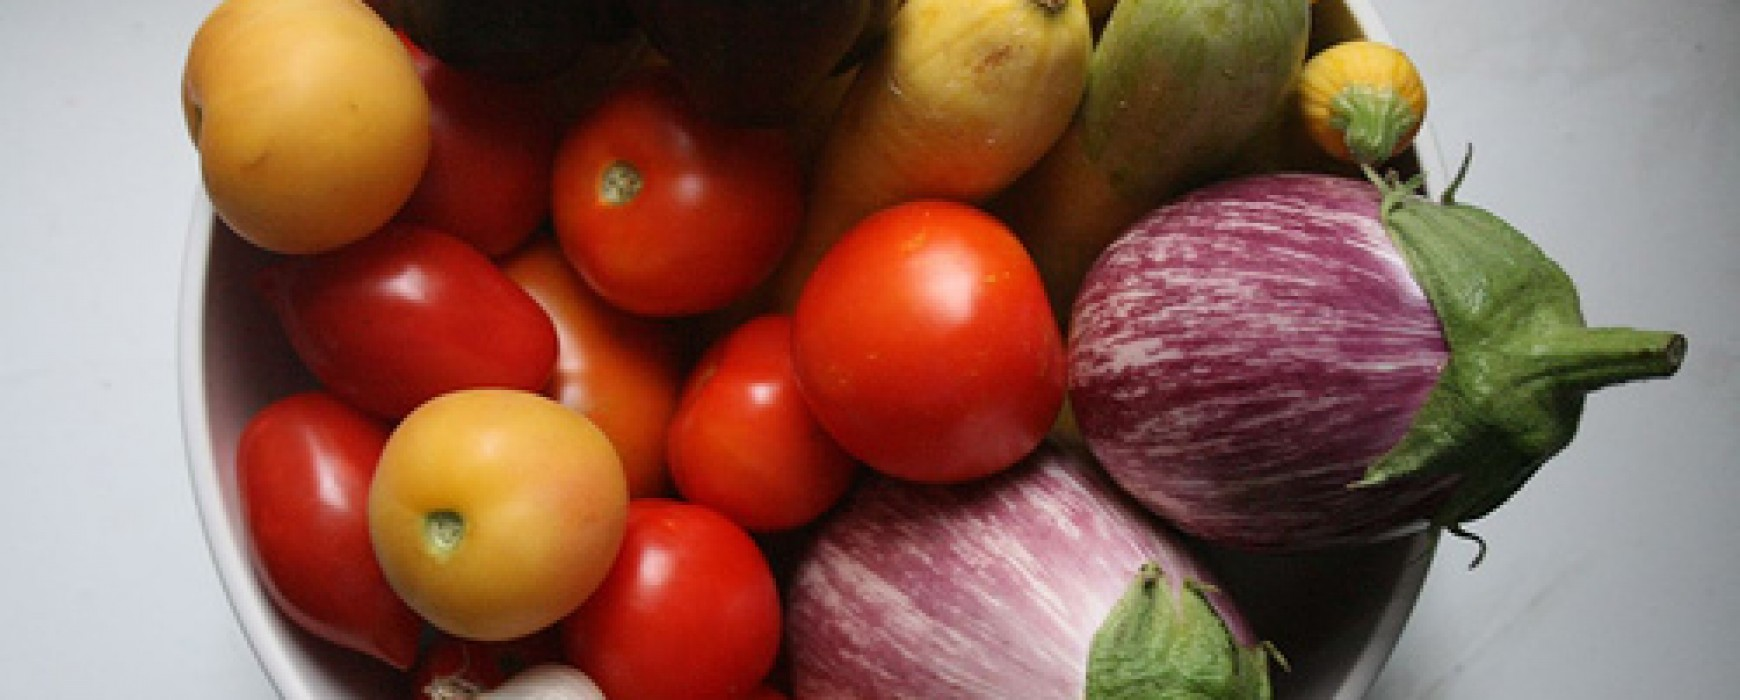 Max Out the Nutrient Density of Common Foods